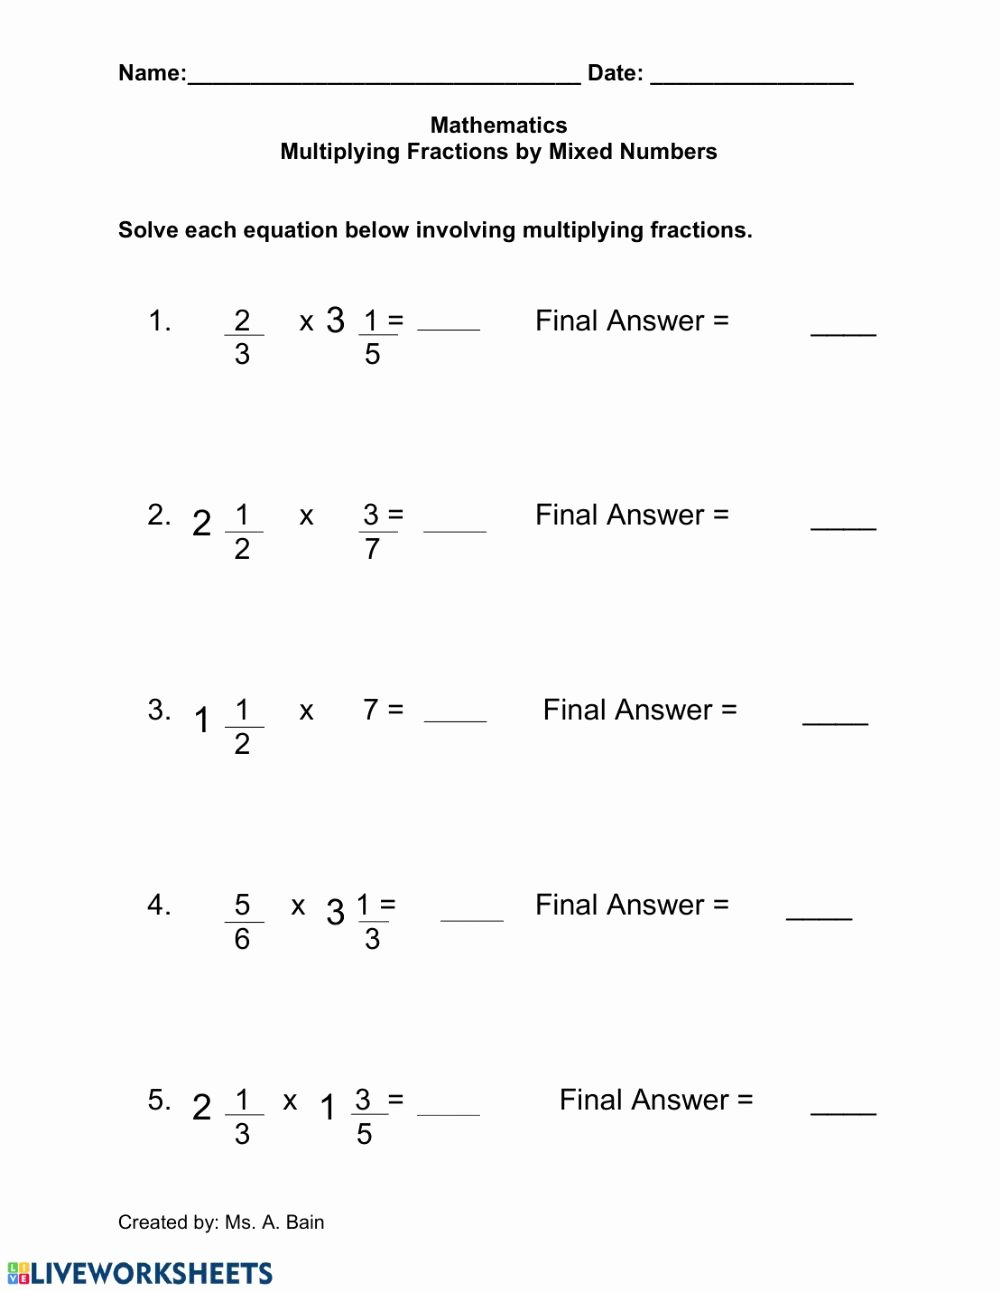 Multiplying Fractions by a Mixed Number zh mz